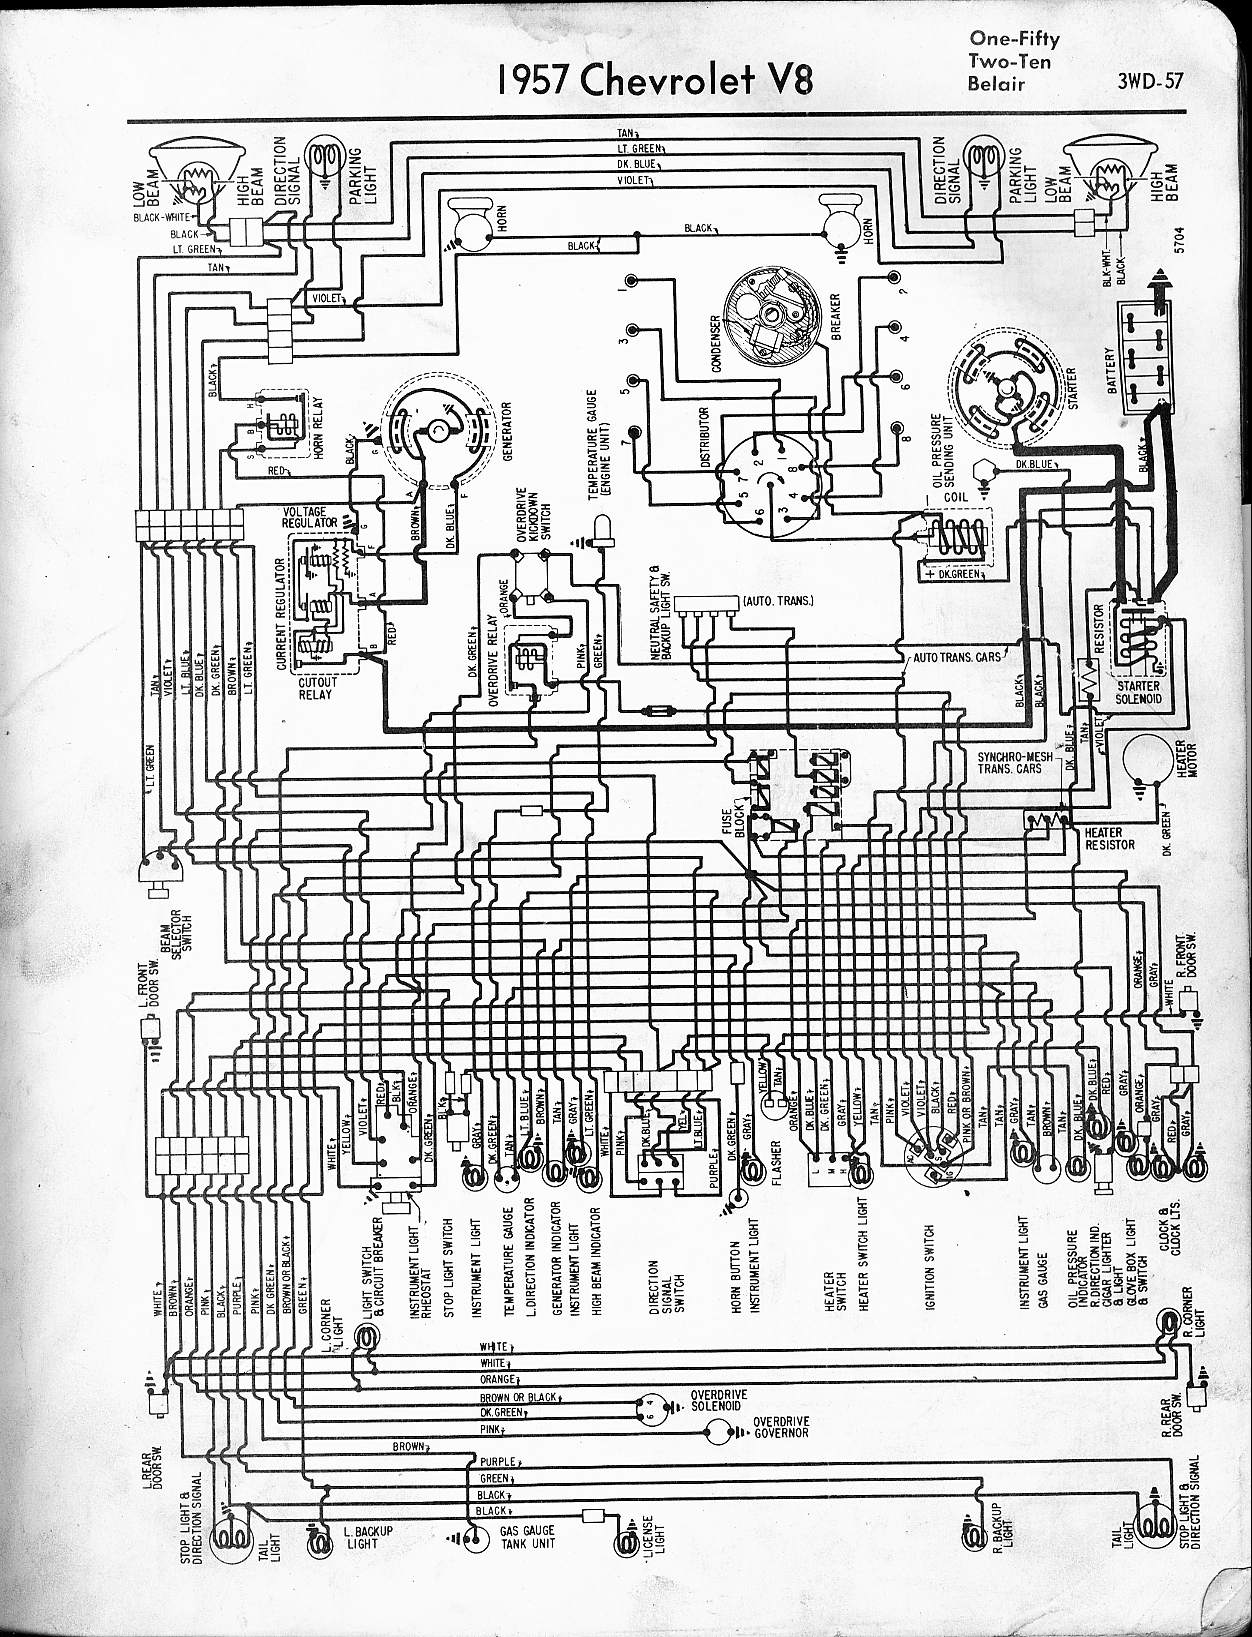 MWireChev57_3WD 057 57 65 chevy wiring diagrams 1956 Chevy Convertible at crackthecode.co